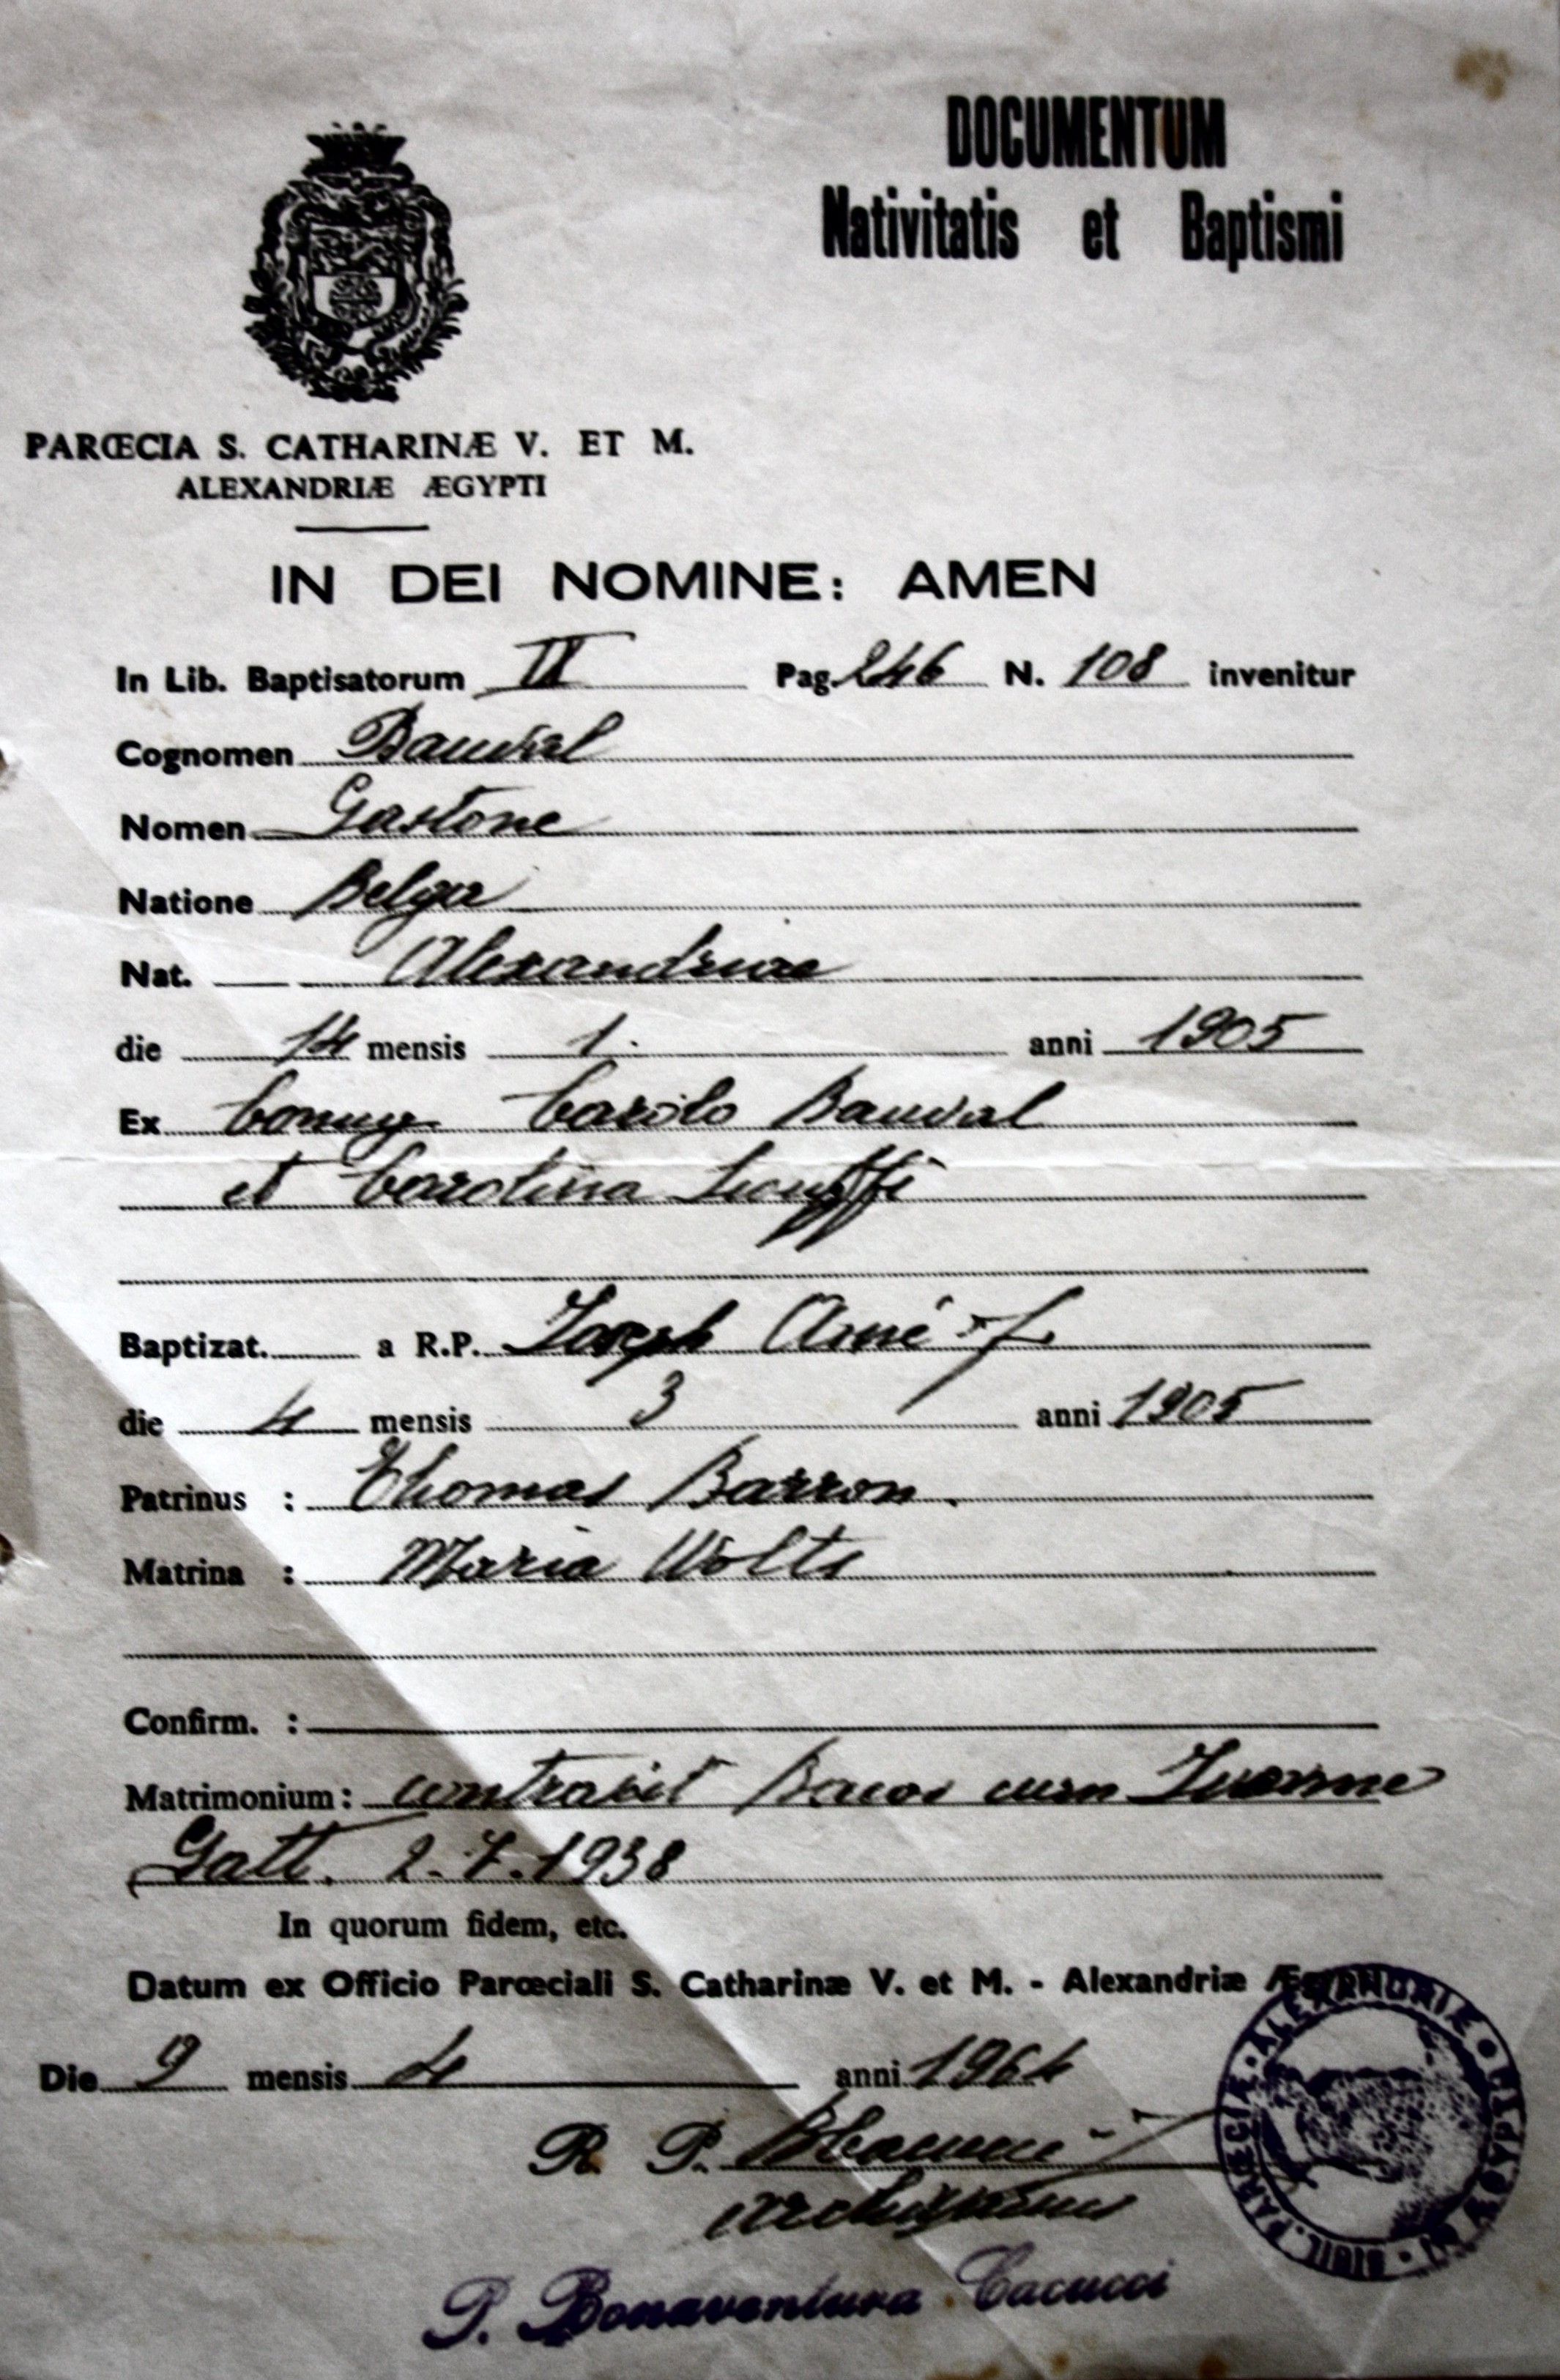 Christian Baptism Certificate of my father, Gaston Bauval, born in Alexandria in 1905